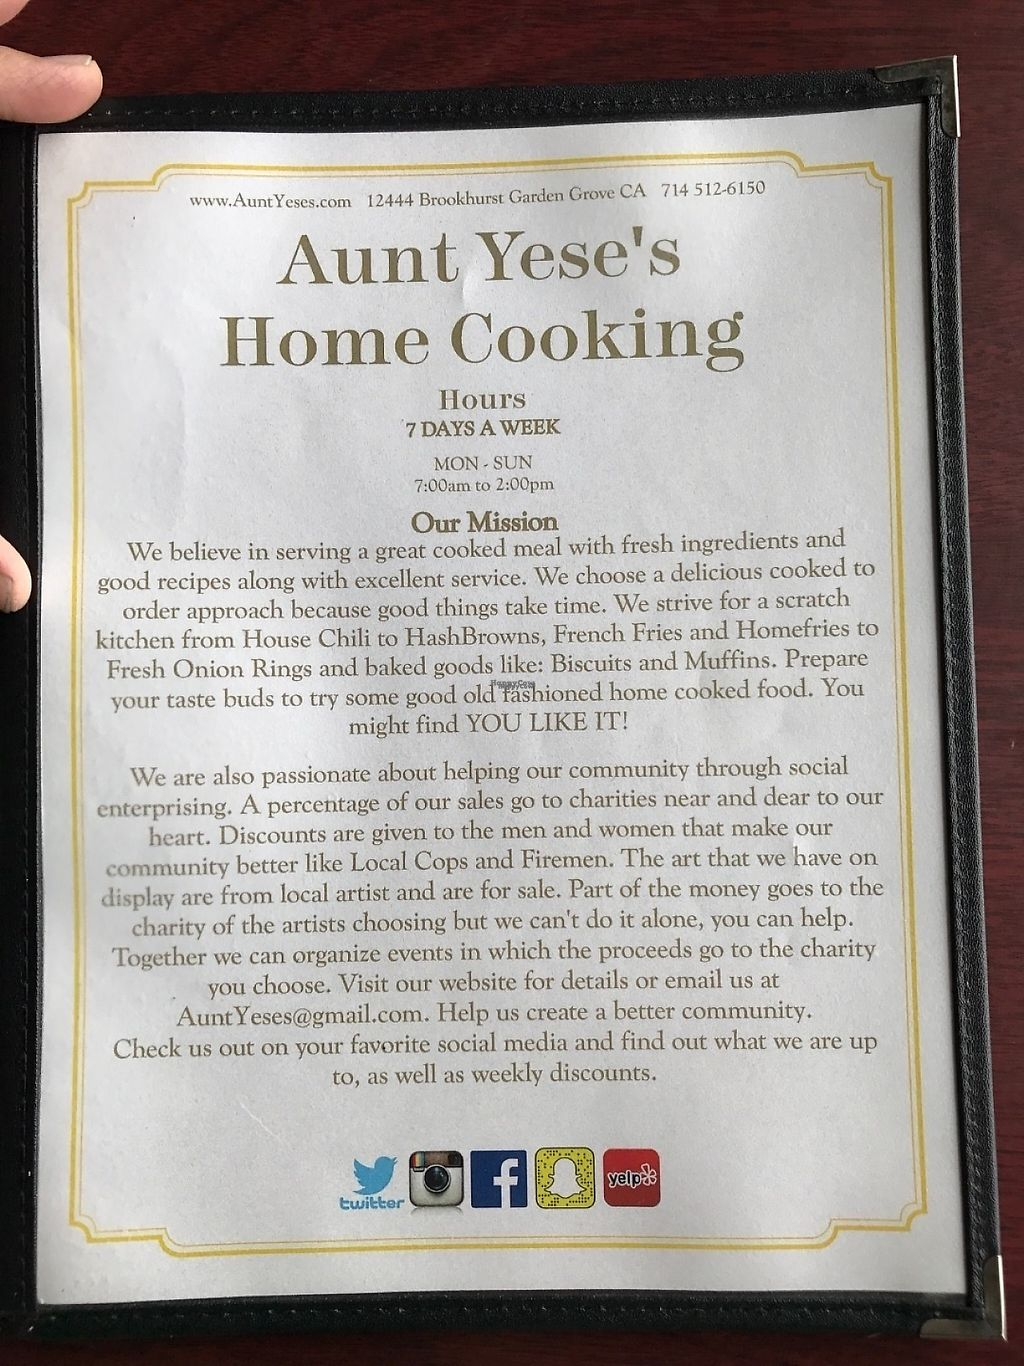 """Photo of Aunt Yese's Home Cooking  by <a href=""""/members/profile/xmrfigx"""">xmrfigx</a> <br/>A little bit about the place <br/> March 4, 2017  - <a href='/contact/abuse/image/88111/232674'>Report</a>"""